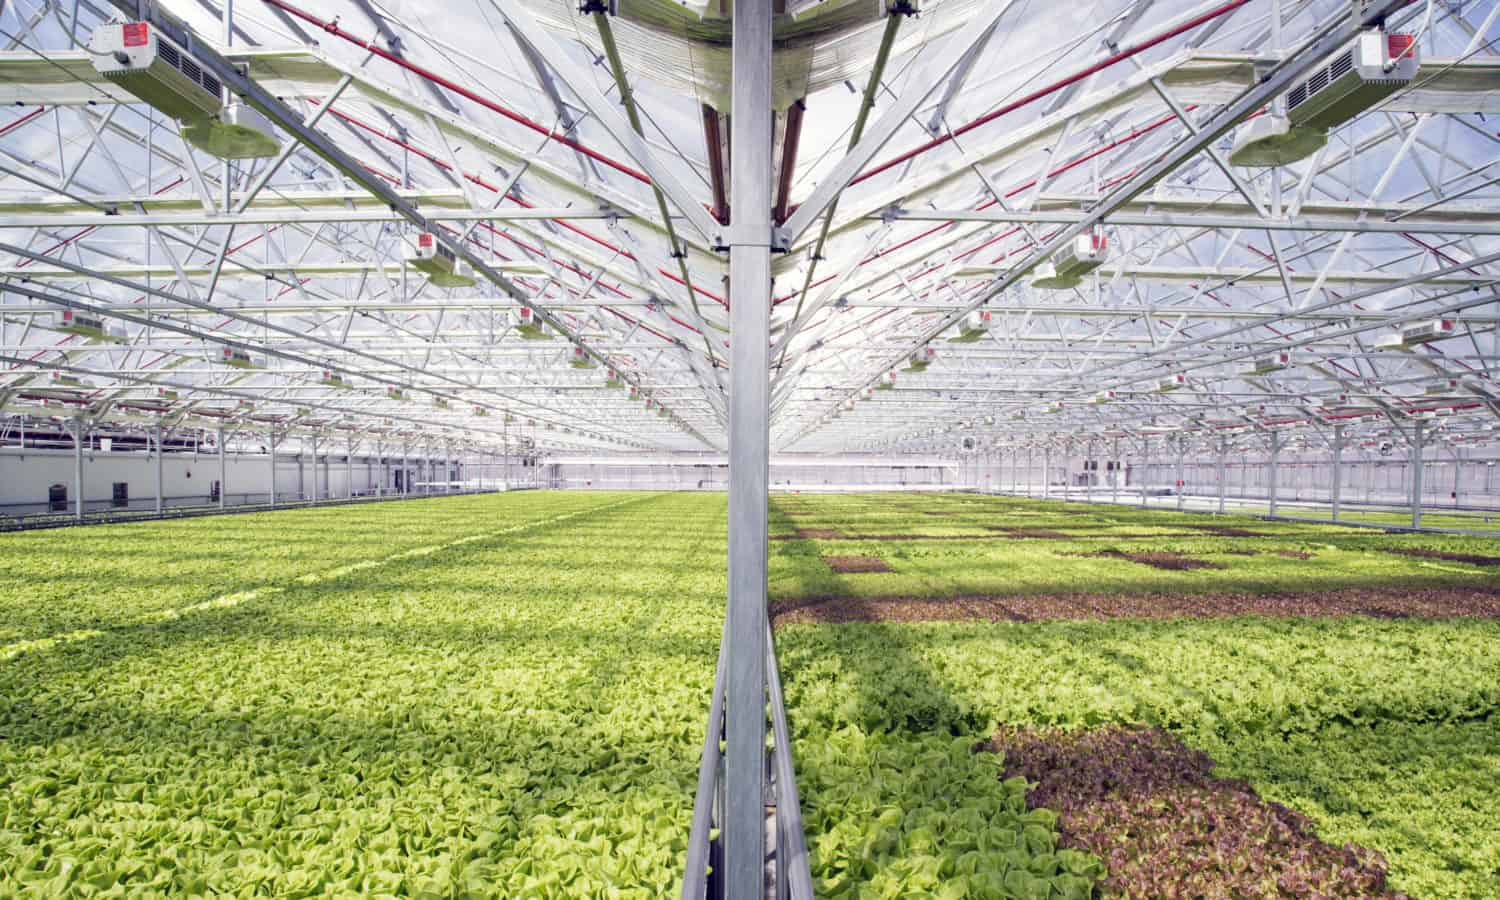 The first commercial urban greenhouse, Gotham Greens, is coming to Baltimore. The new 100,000 square feet greenhouse will bring fresh greens and new jobs to the city.